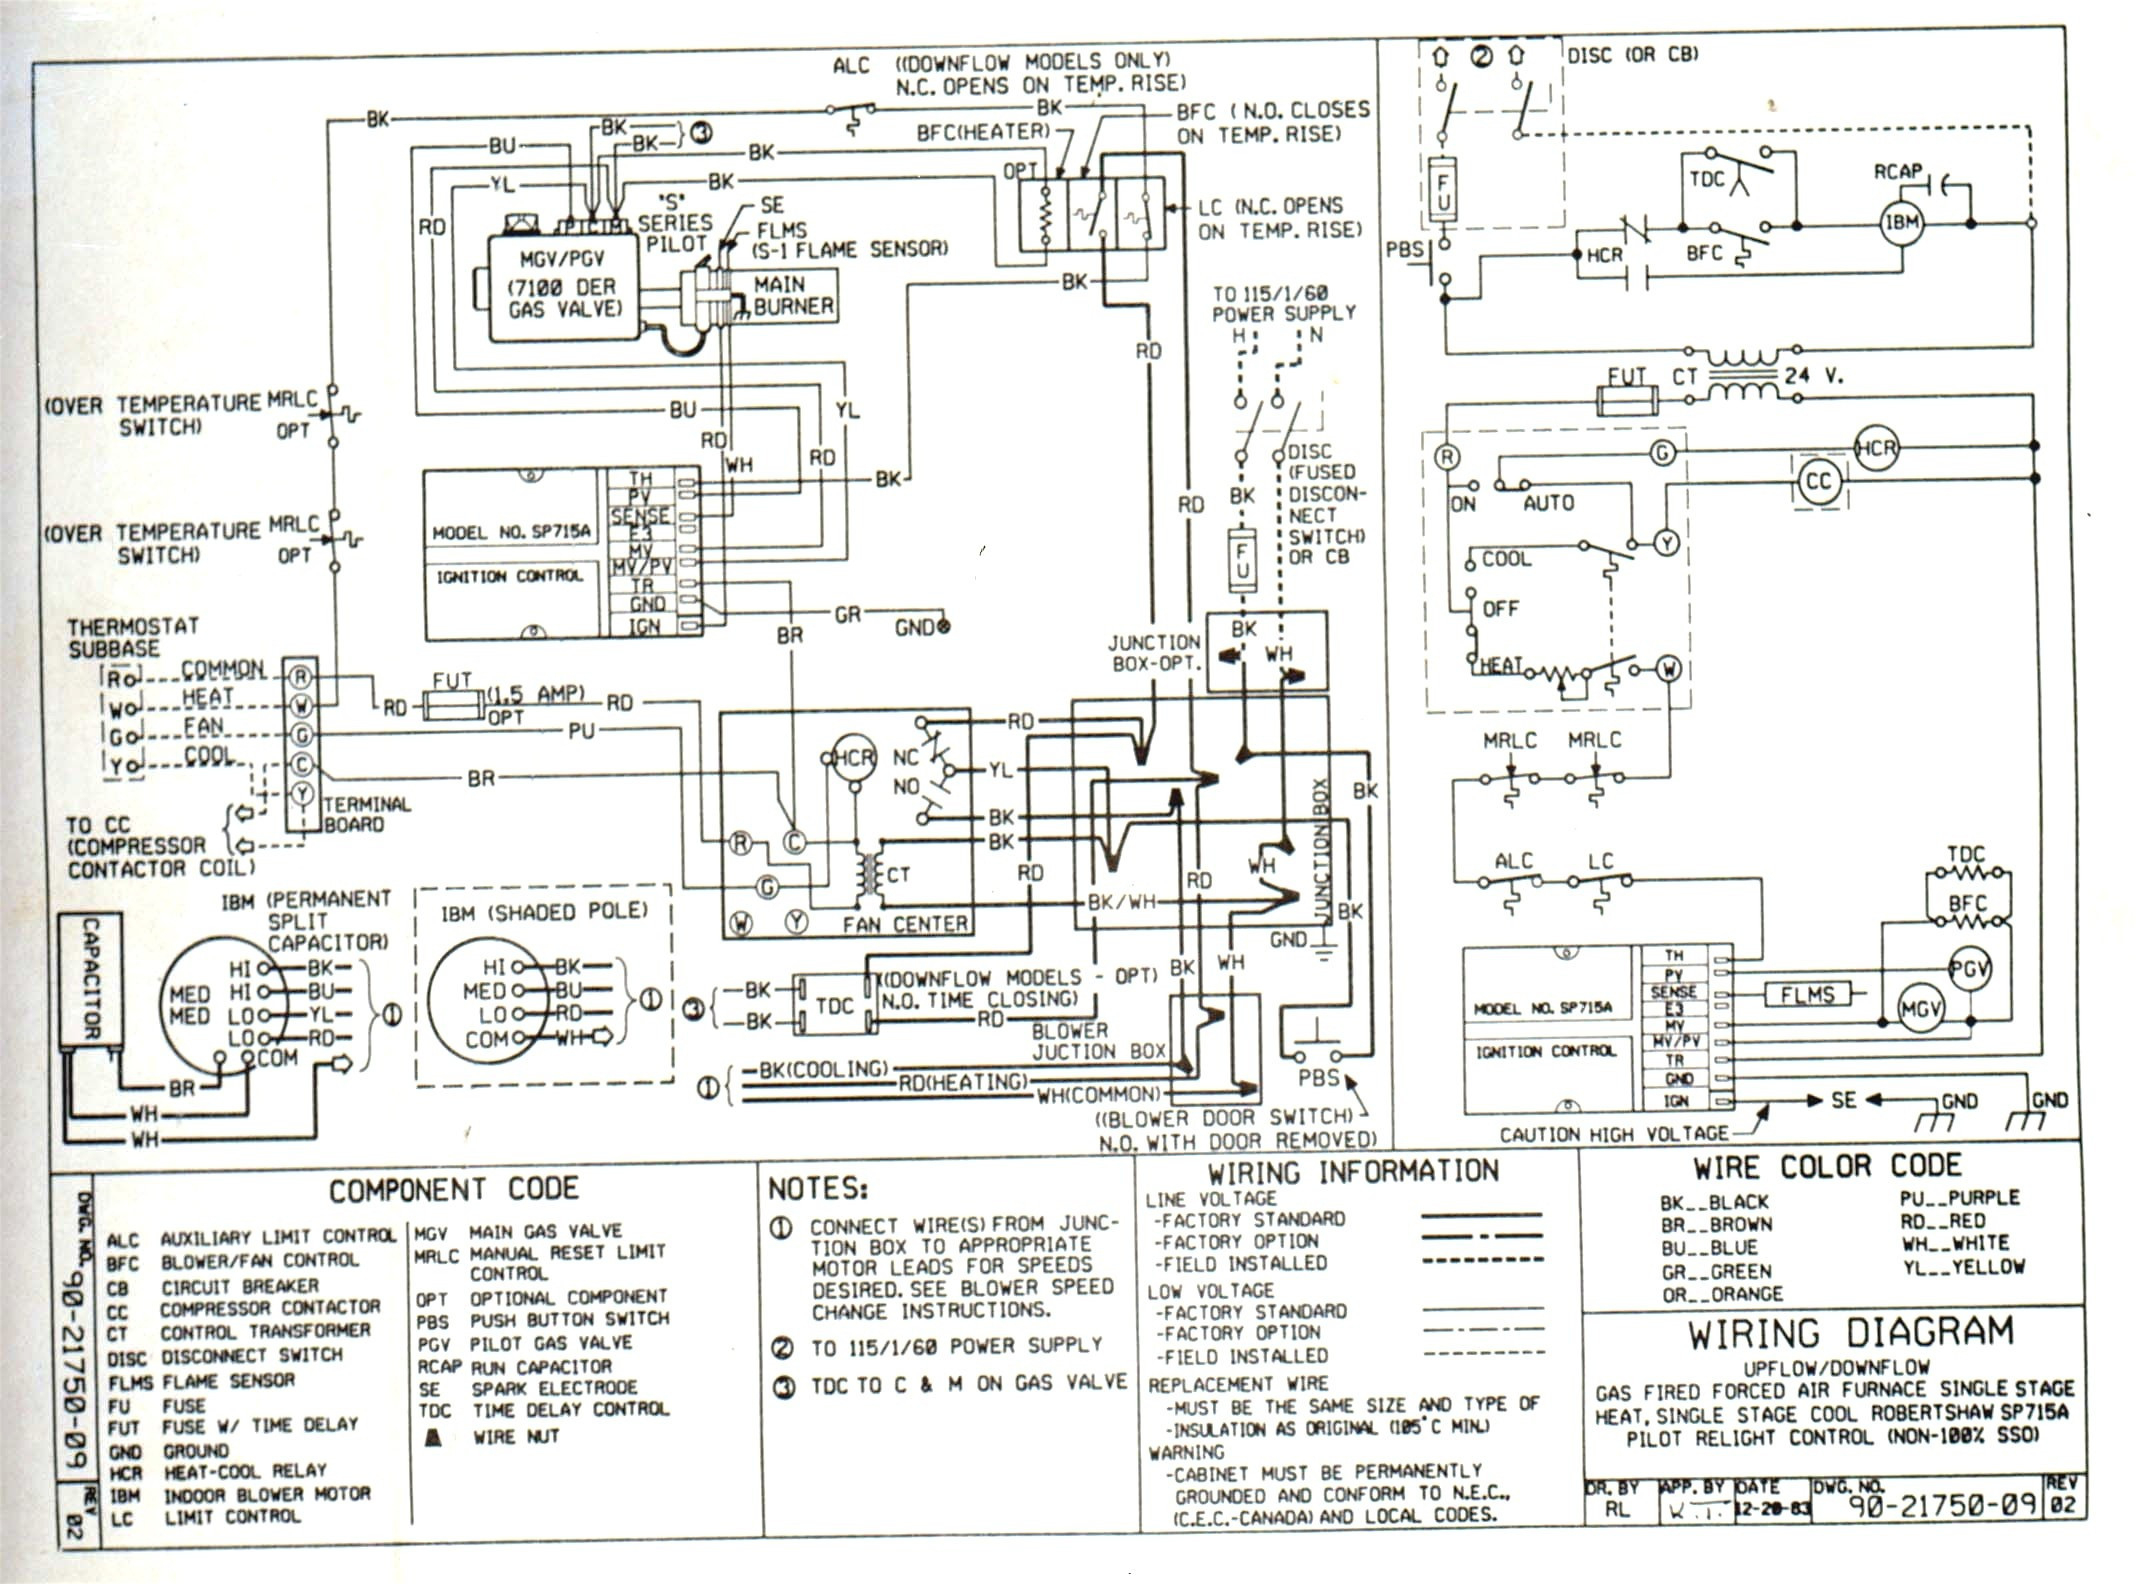 Old Ducane Oil Furnace Wiring | Wiring Diagram